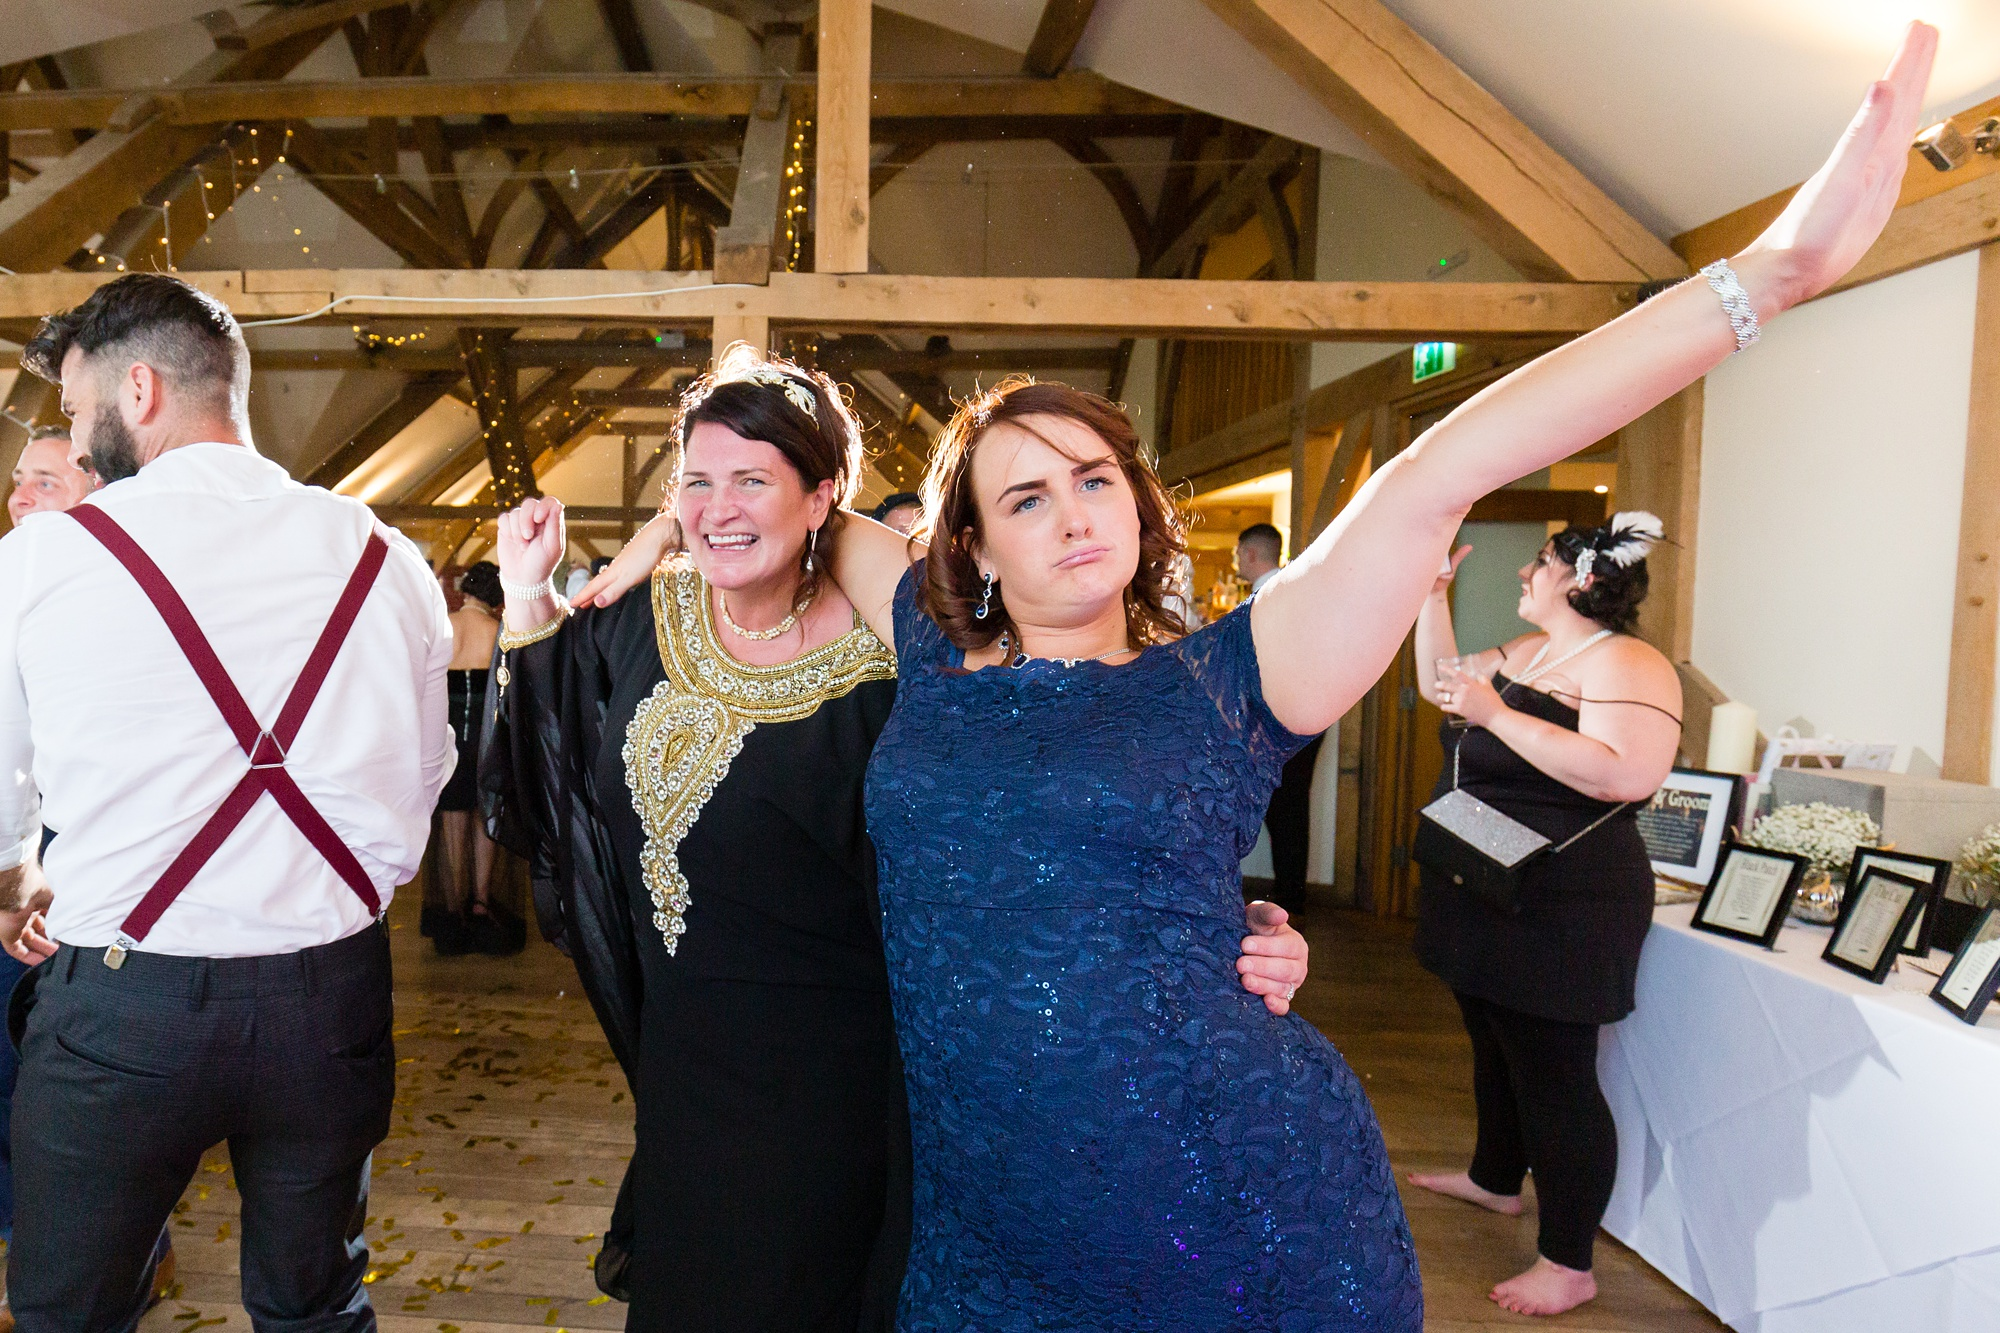 Guests dancing at York wedding with woman in blue dress.